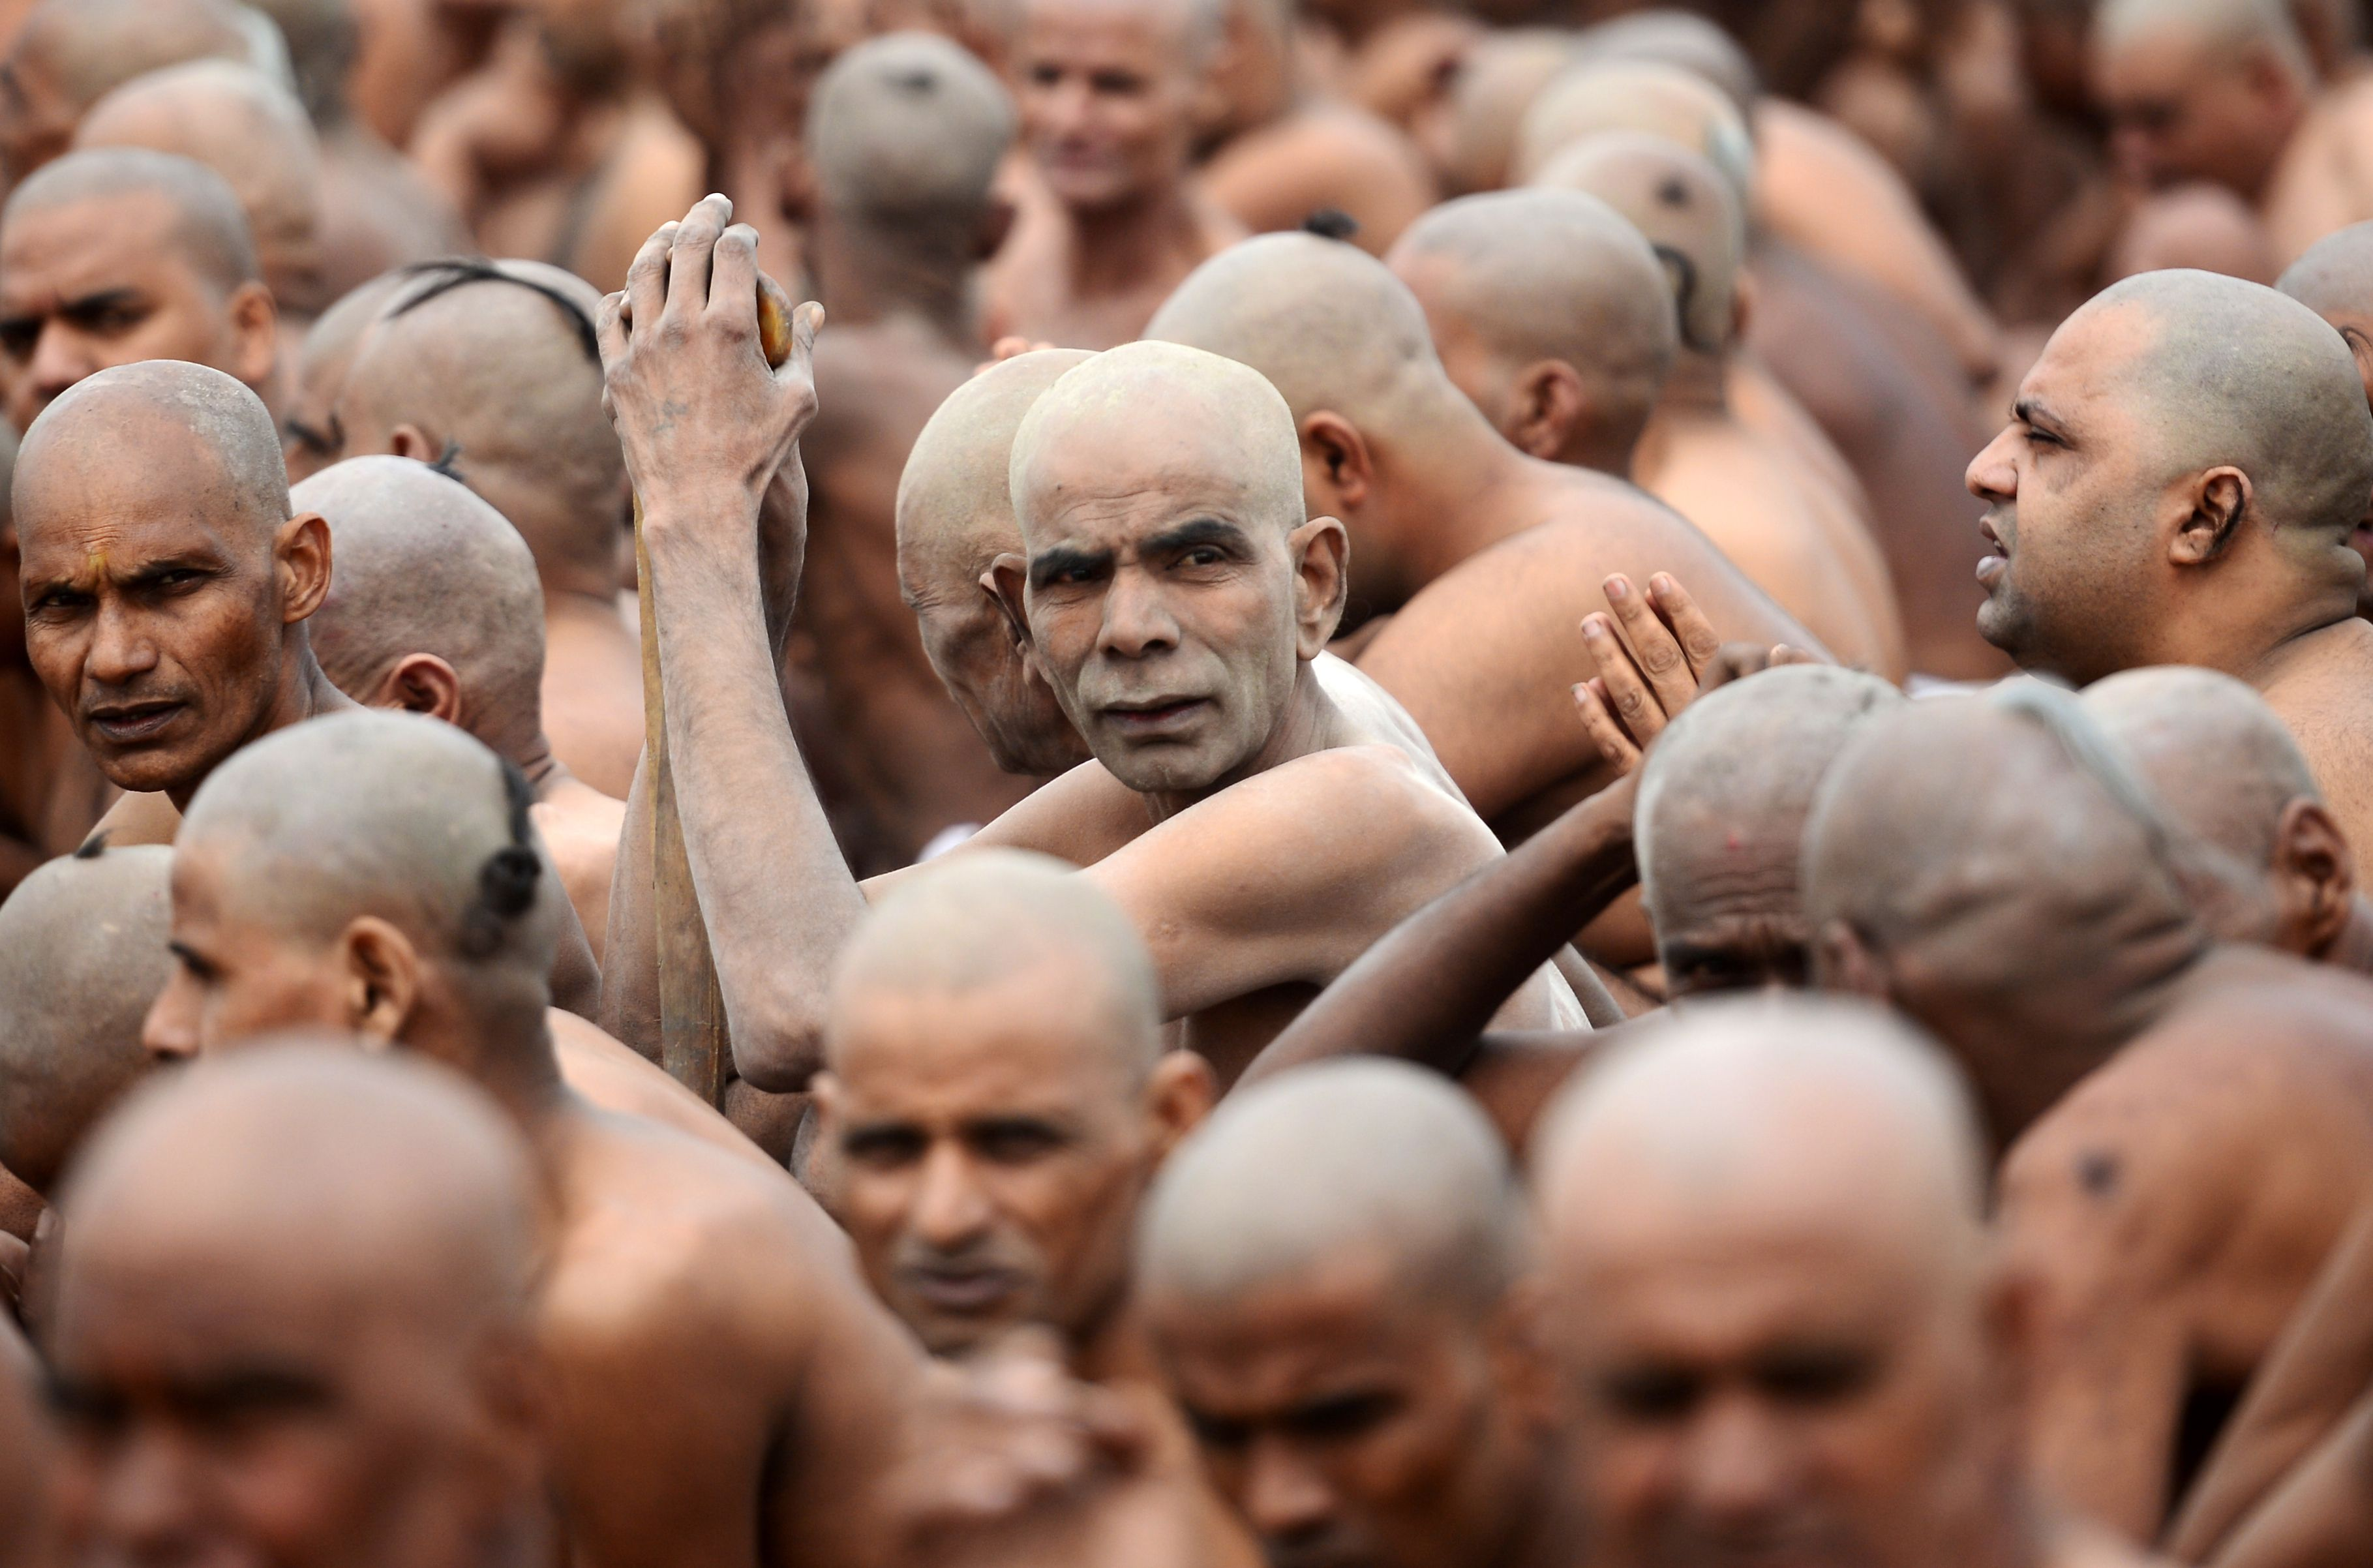 Newly initiated 'Naga Sadhus' (Hindu holy men) sit as they perform rituals on the banks of the Ganges River during the Kumbh mela festival, in Allahabad. During every Kumbh Mela, the diksha, a ritual of initiation by a guru takes place for new members.